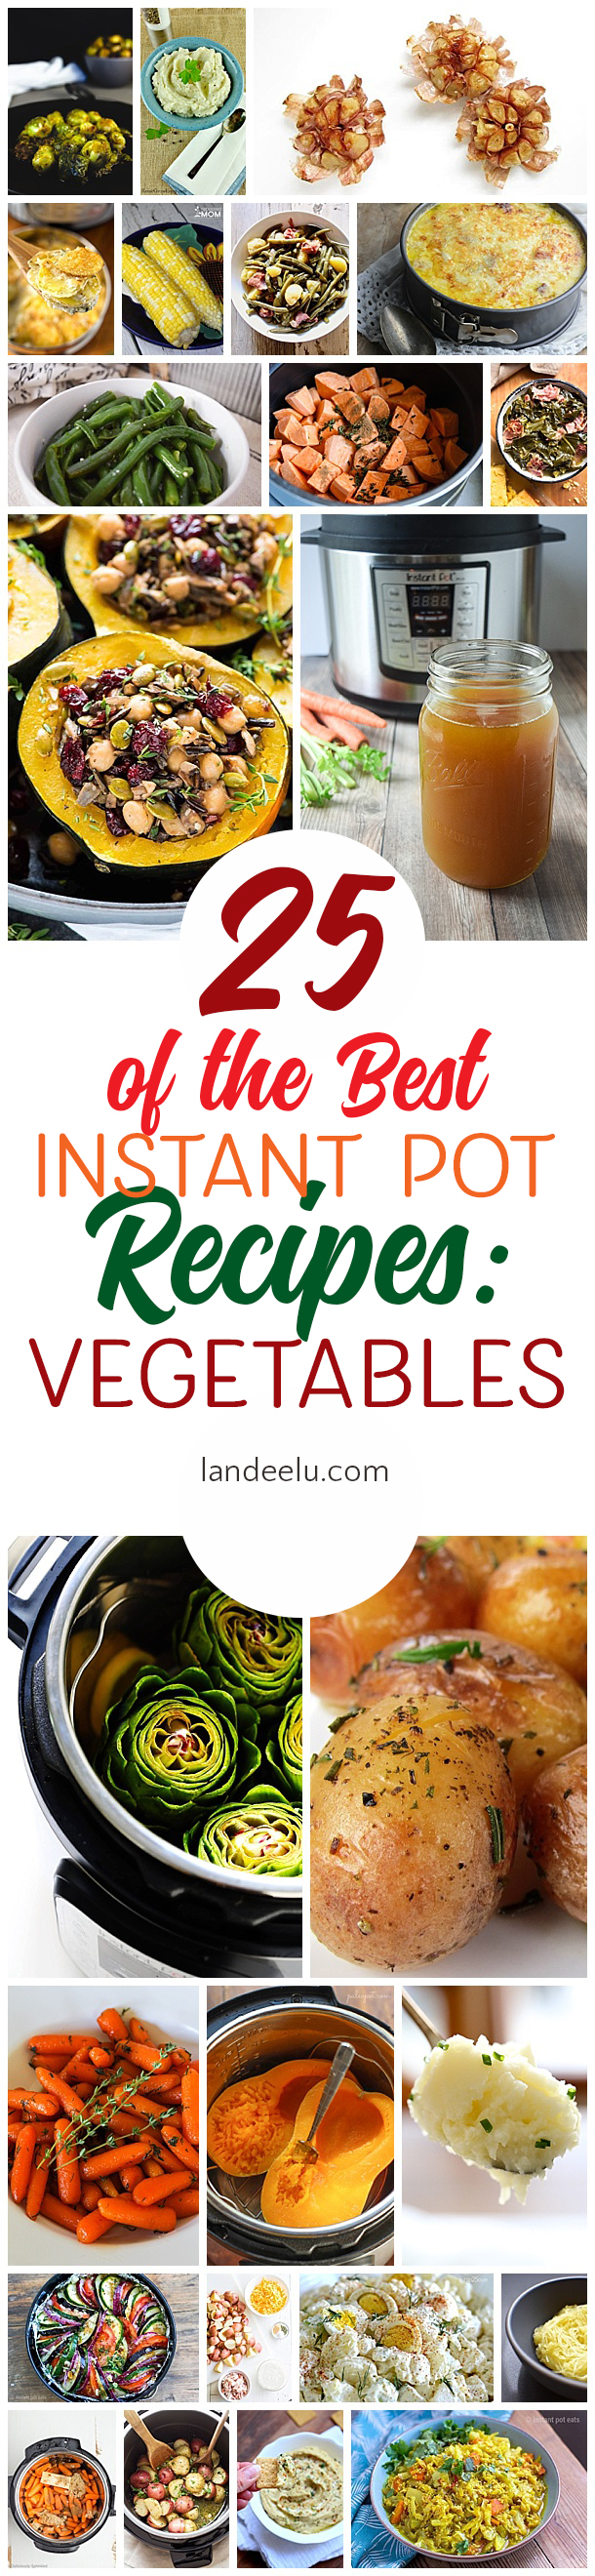 The best instant pot recipes for yummy vegetables! Can't wait to try these! #instantpot #instantpotrecipes #pressurecookerrecipes #pressurecooker #vegetablerecipes #veggies